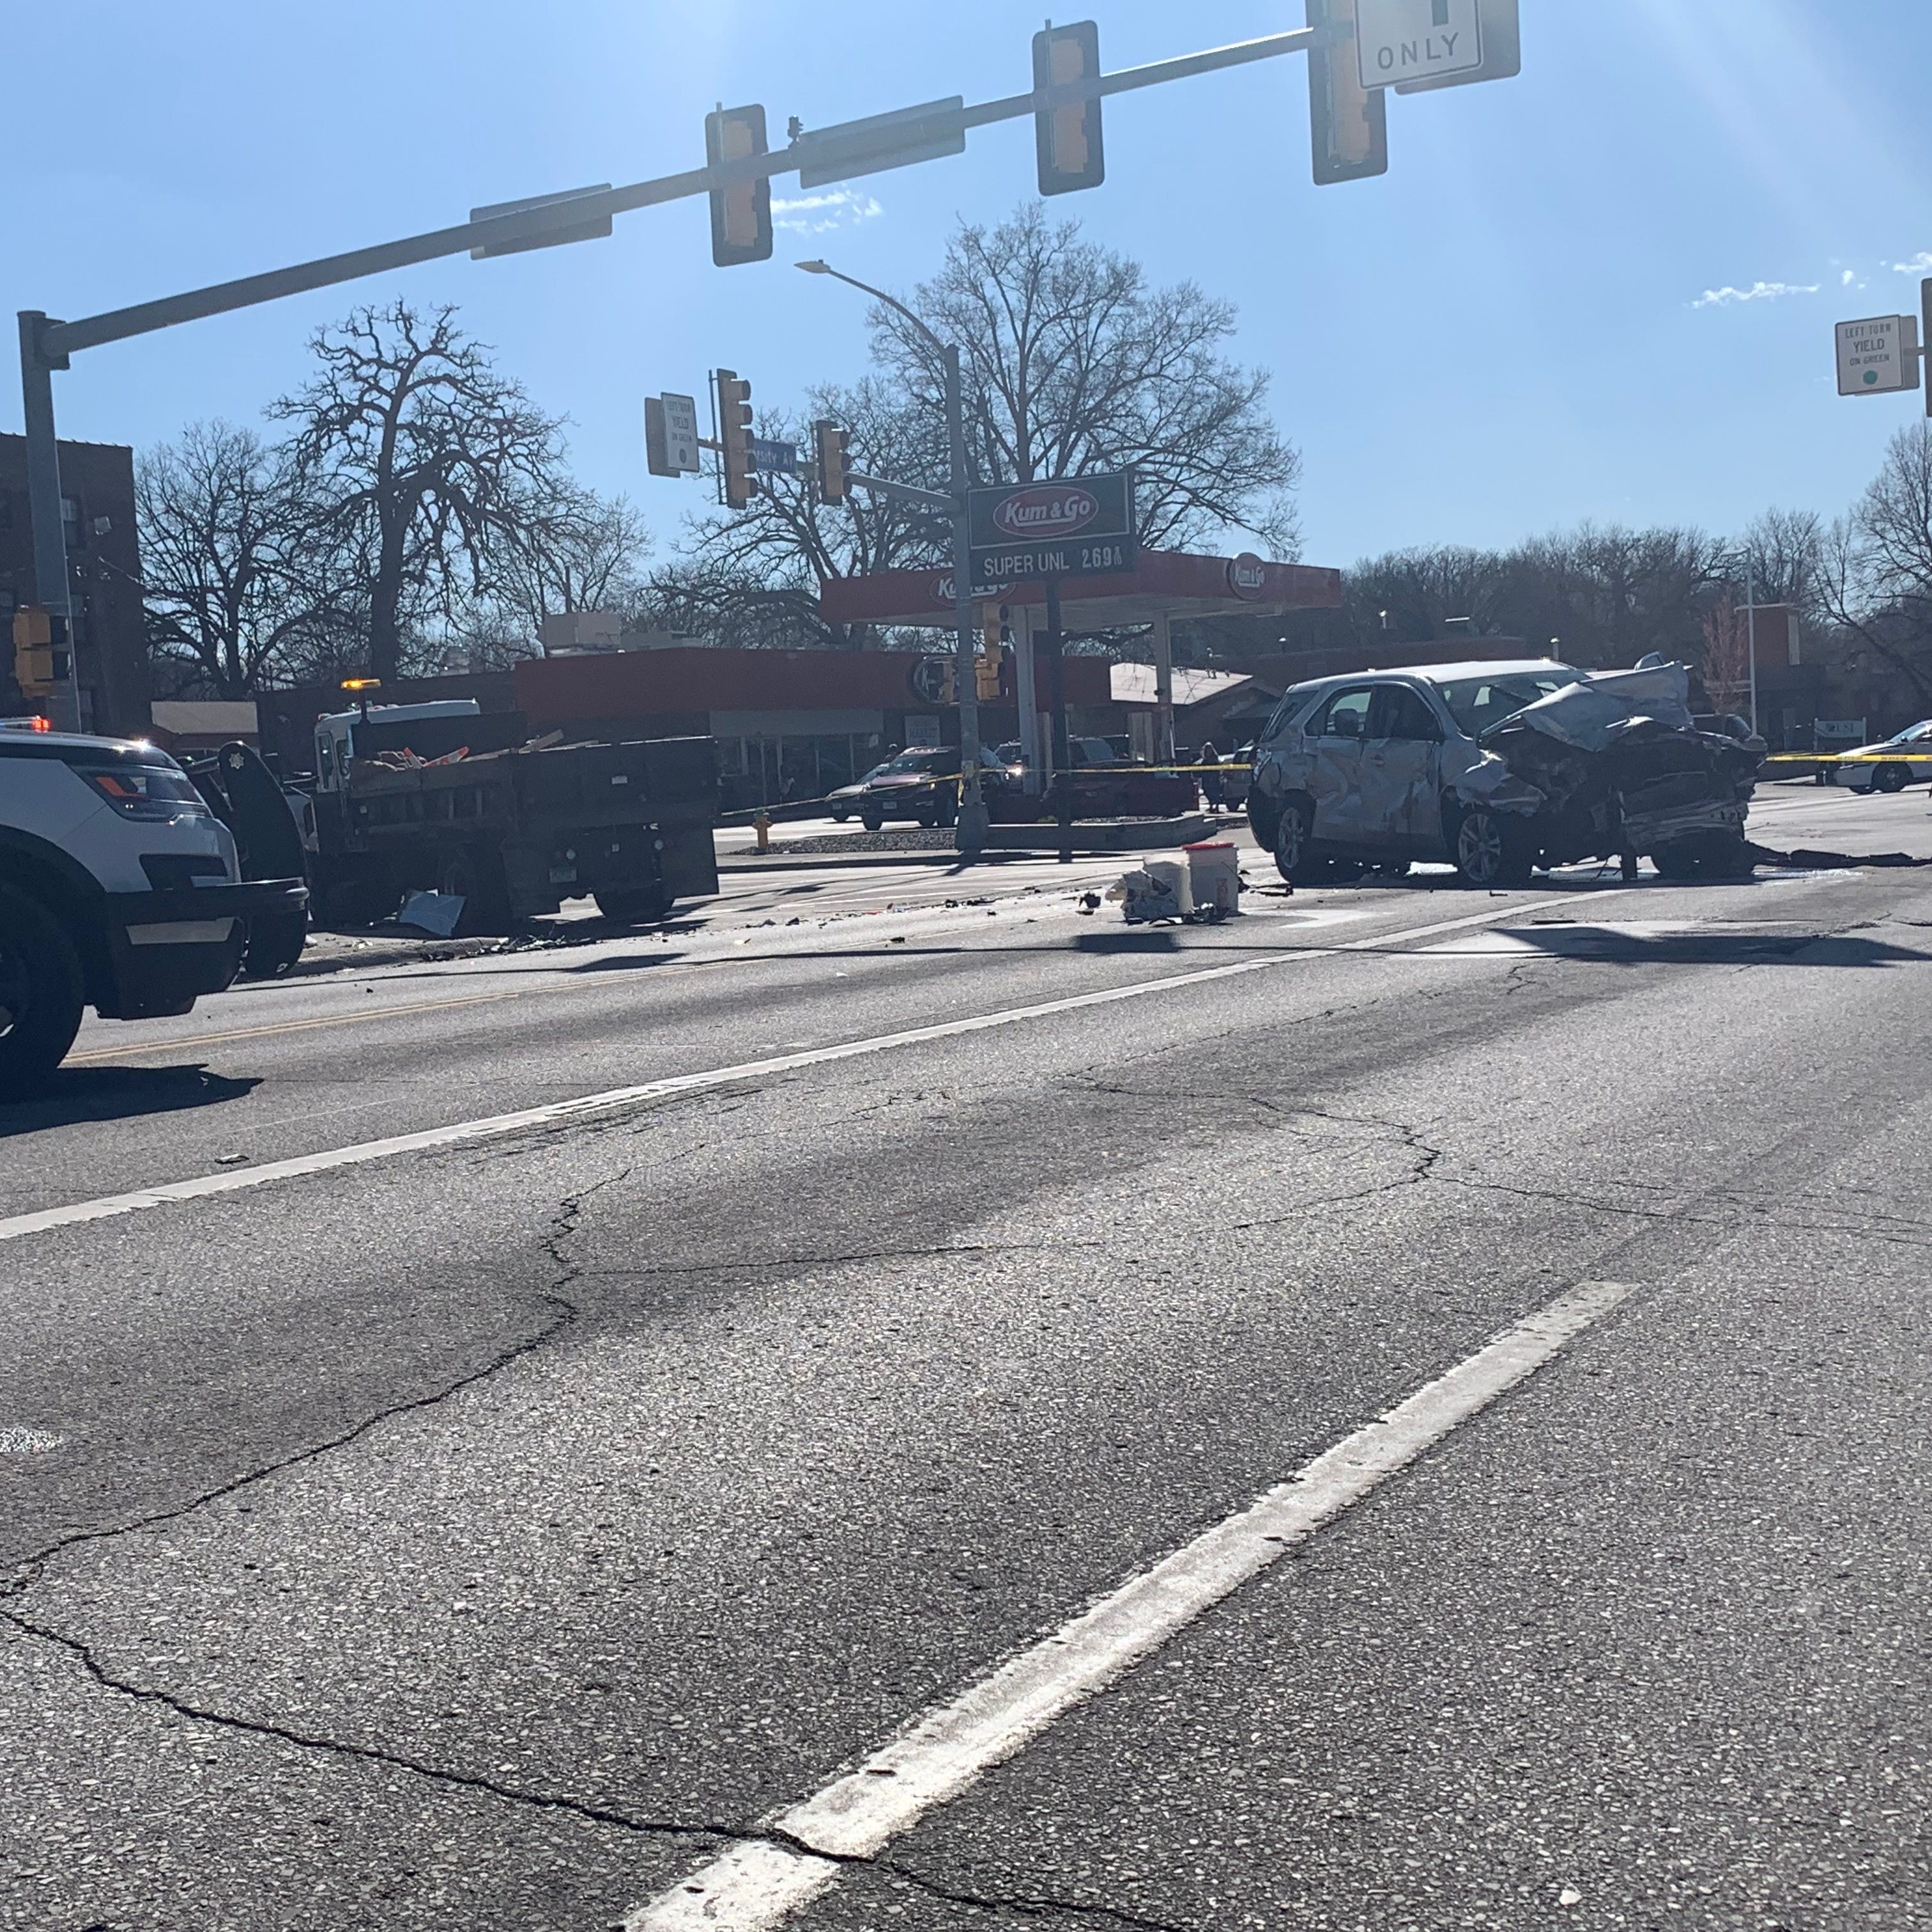 Police: Drake neighborhood intersection closed after serious crash involving juveniles in a stolen car